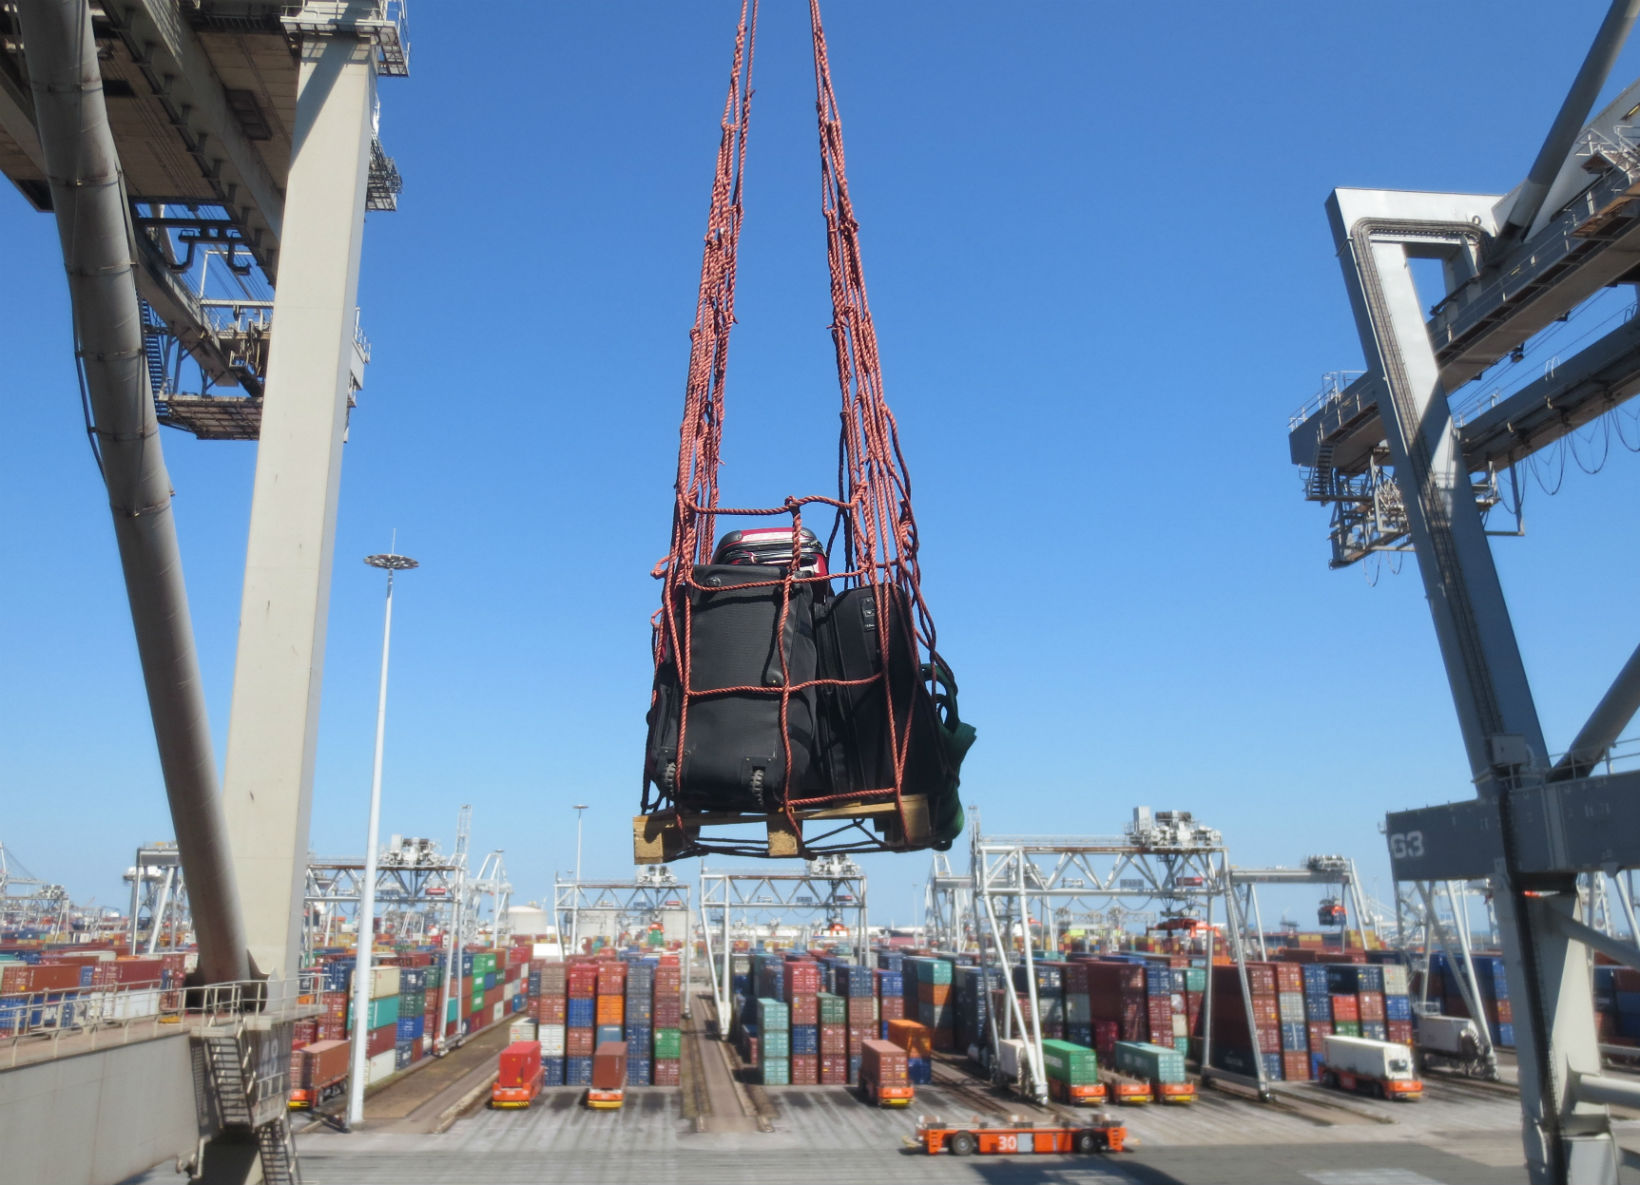 Hoisting our luggage on board in Rotterdam